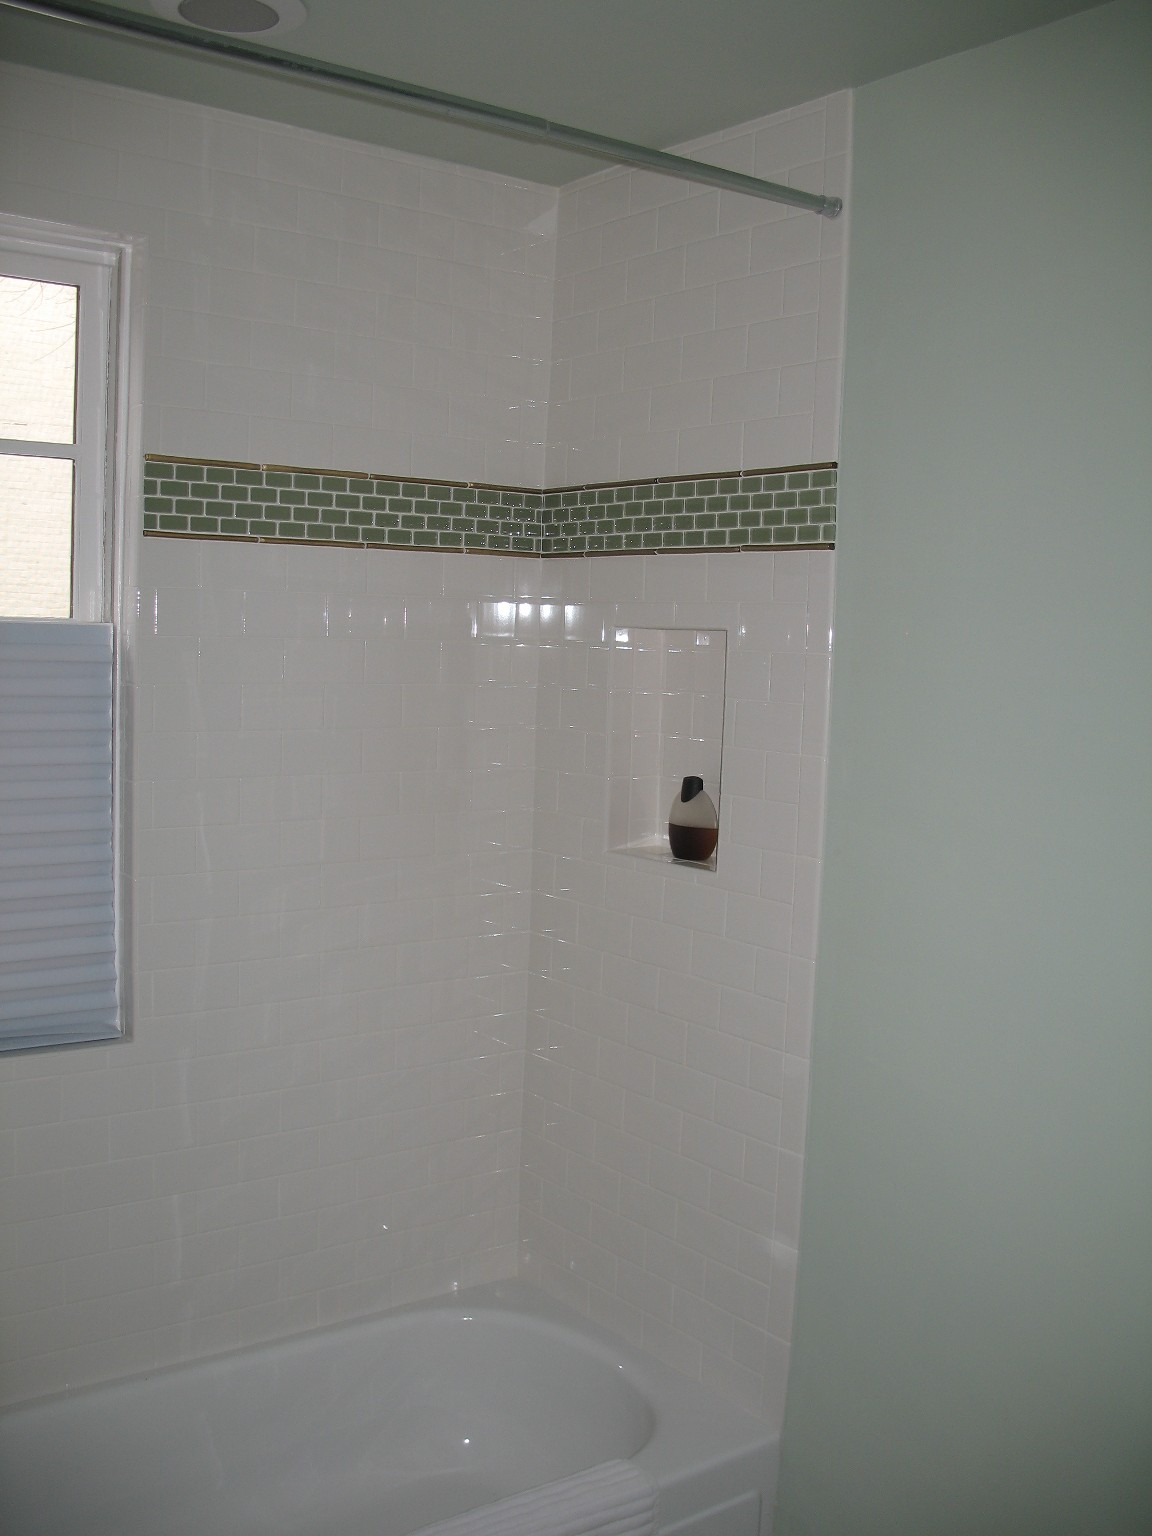 Charmant Choose White Subway Tile Shower And Planted Sink Above White Bathtub Inside  Small Bathroom